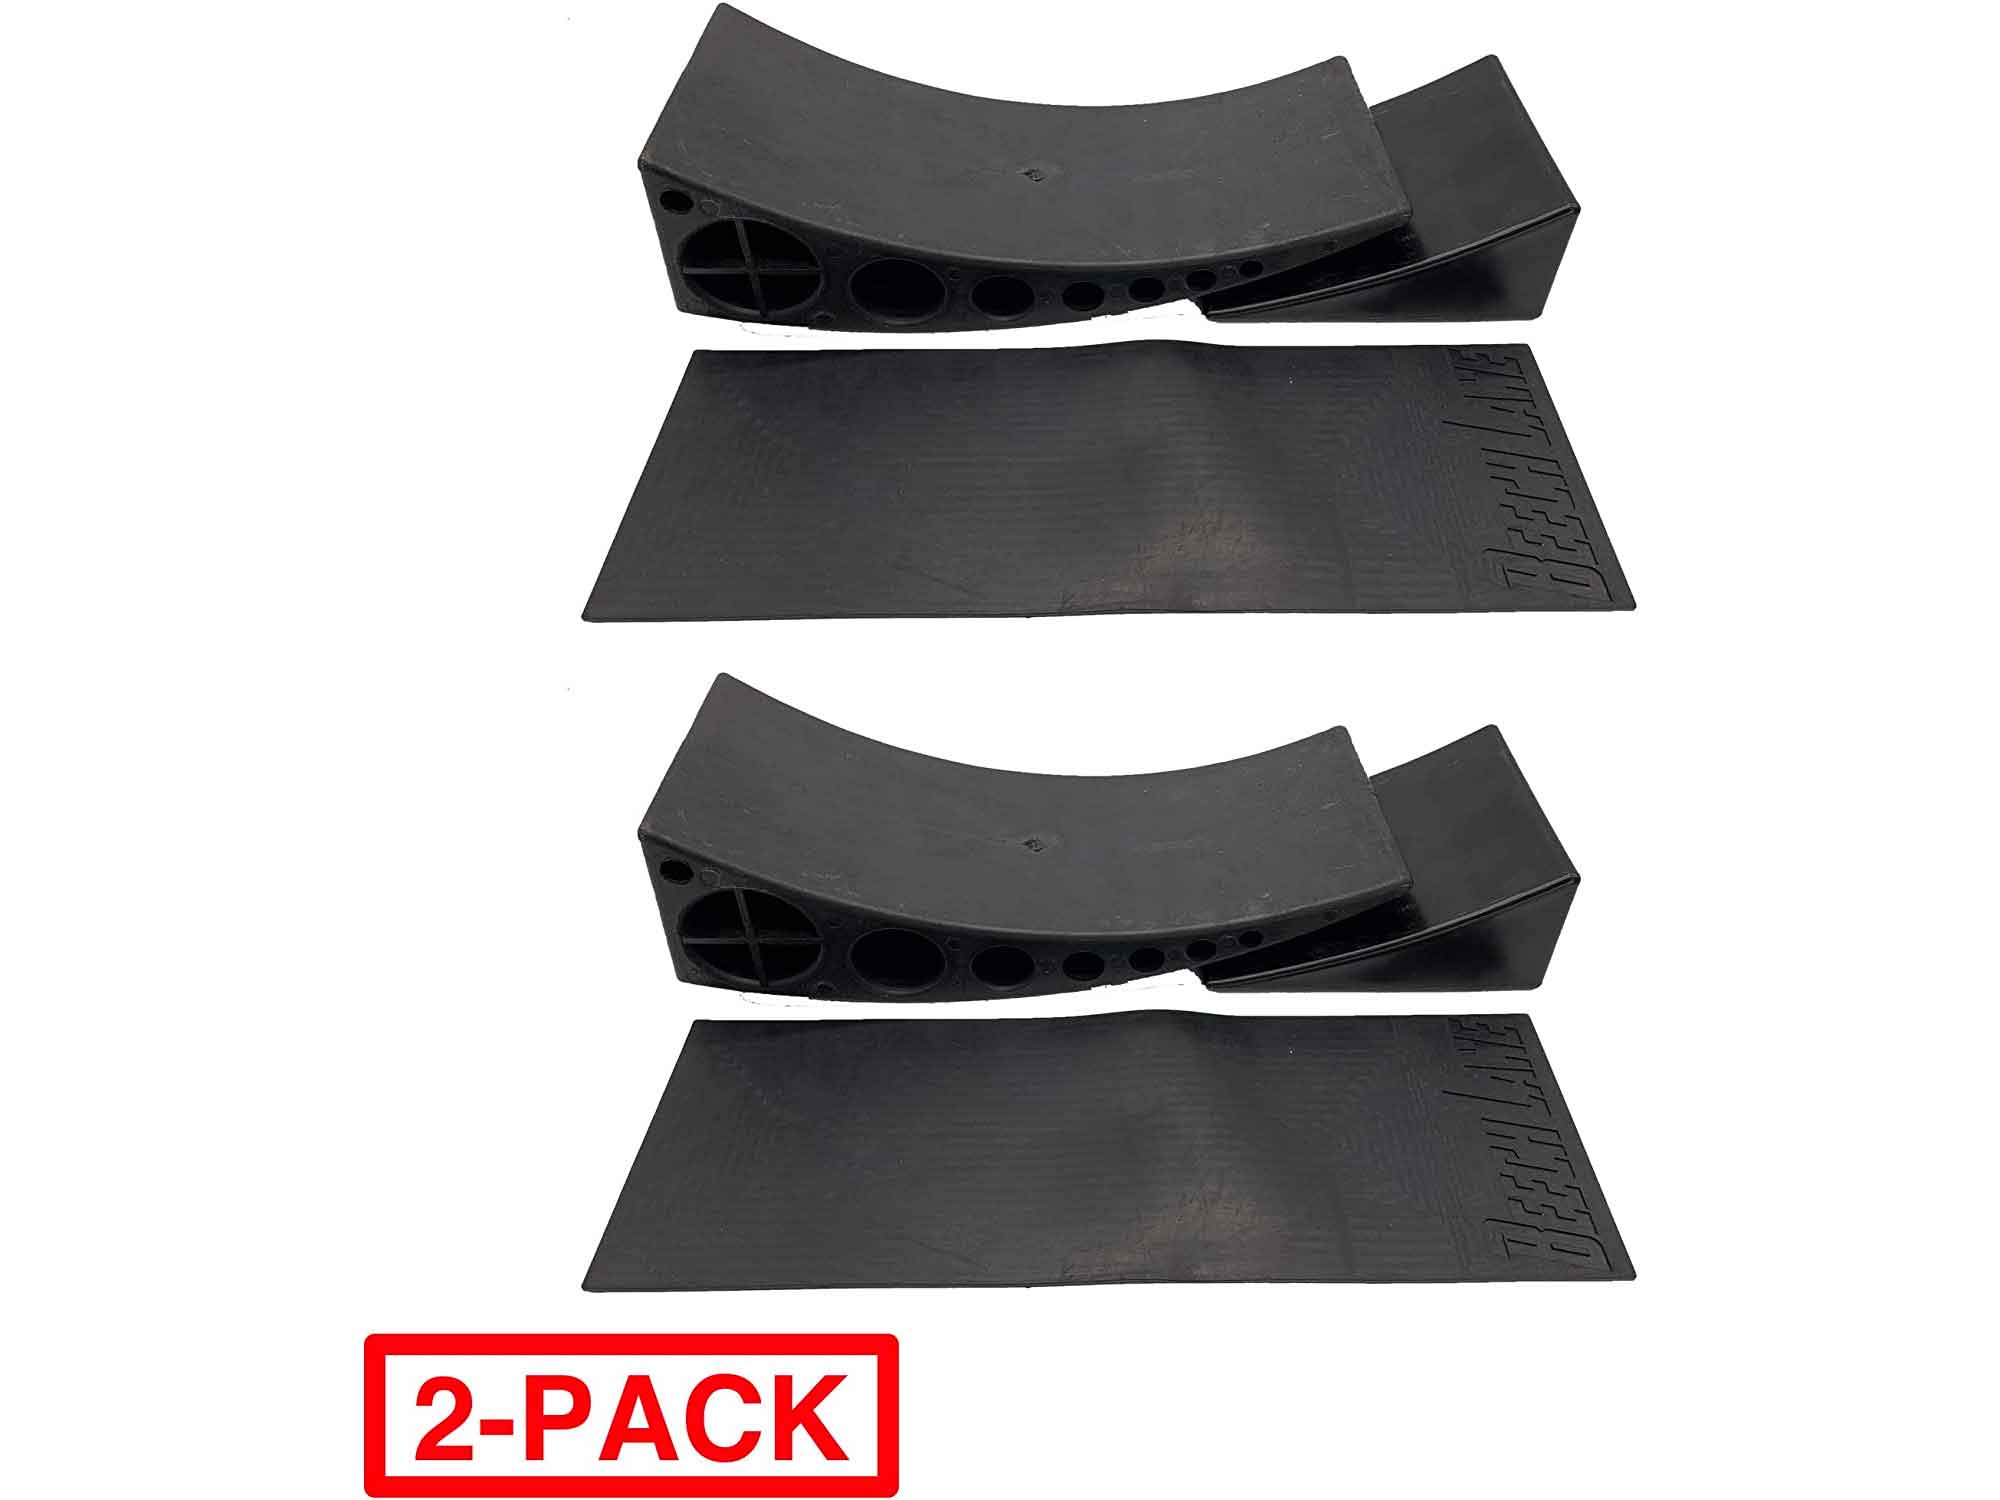 Beech Lane Camper Leveler 2 Pack - Precise Camper Leveling, Includes Two Curved Levelers, Two Chocks, and Two Rubber Grip Mats, Heavy Duty Leveler Works for Campers Up to 35,000 LBs